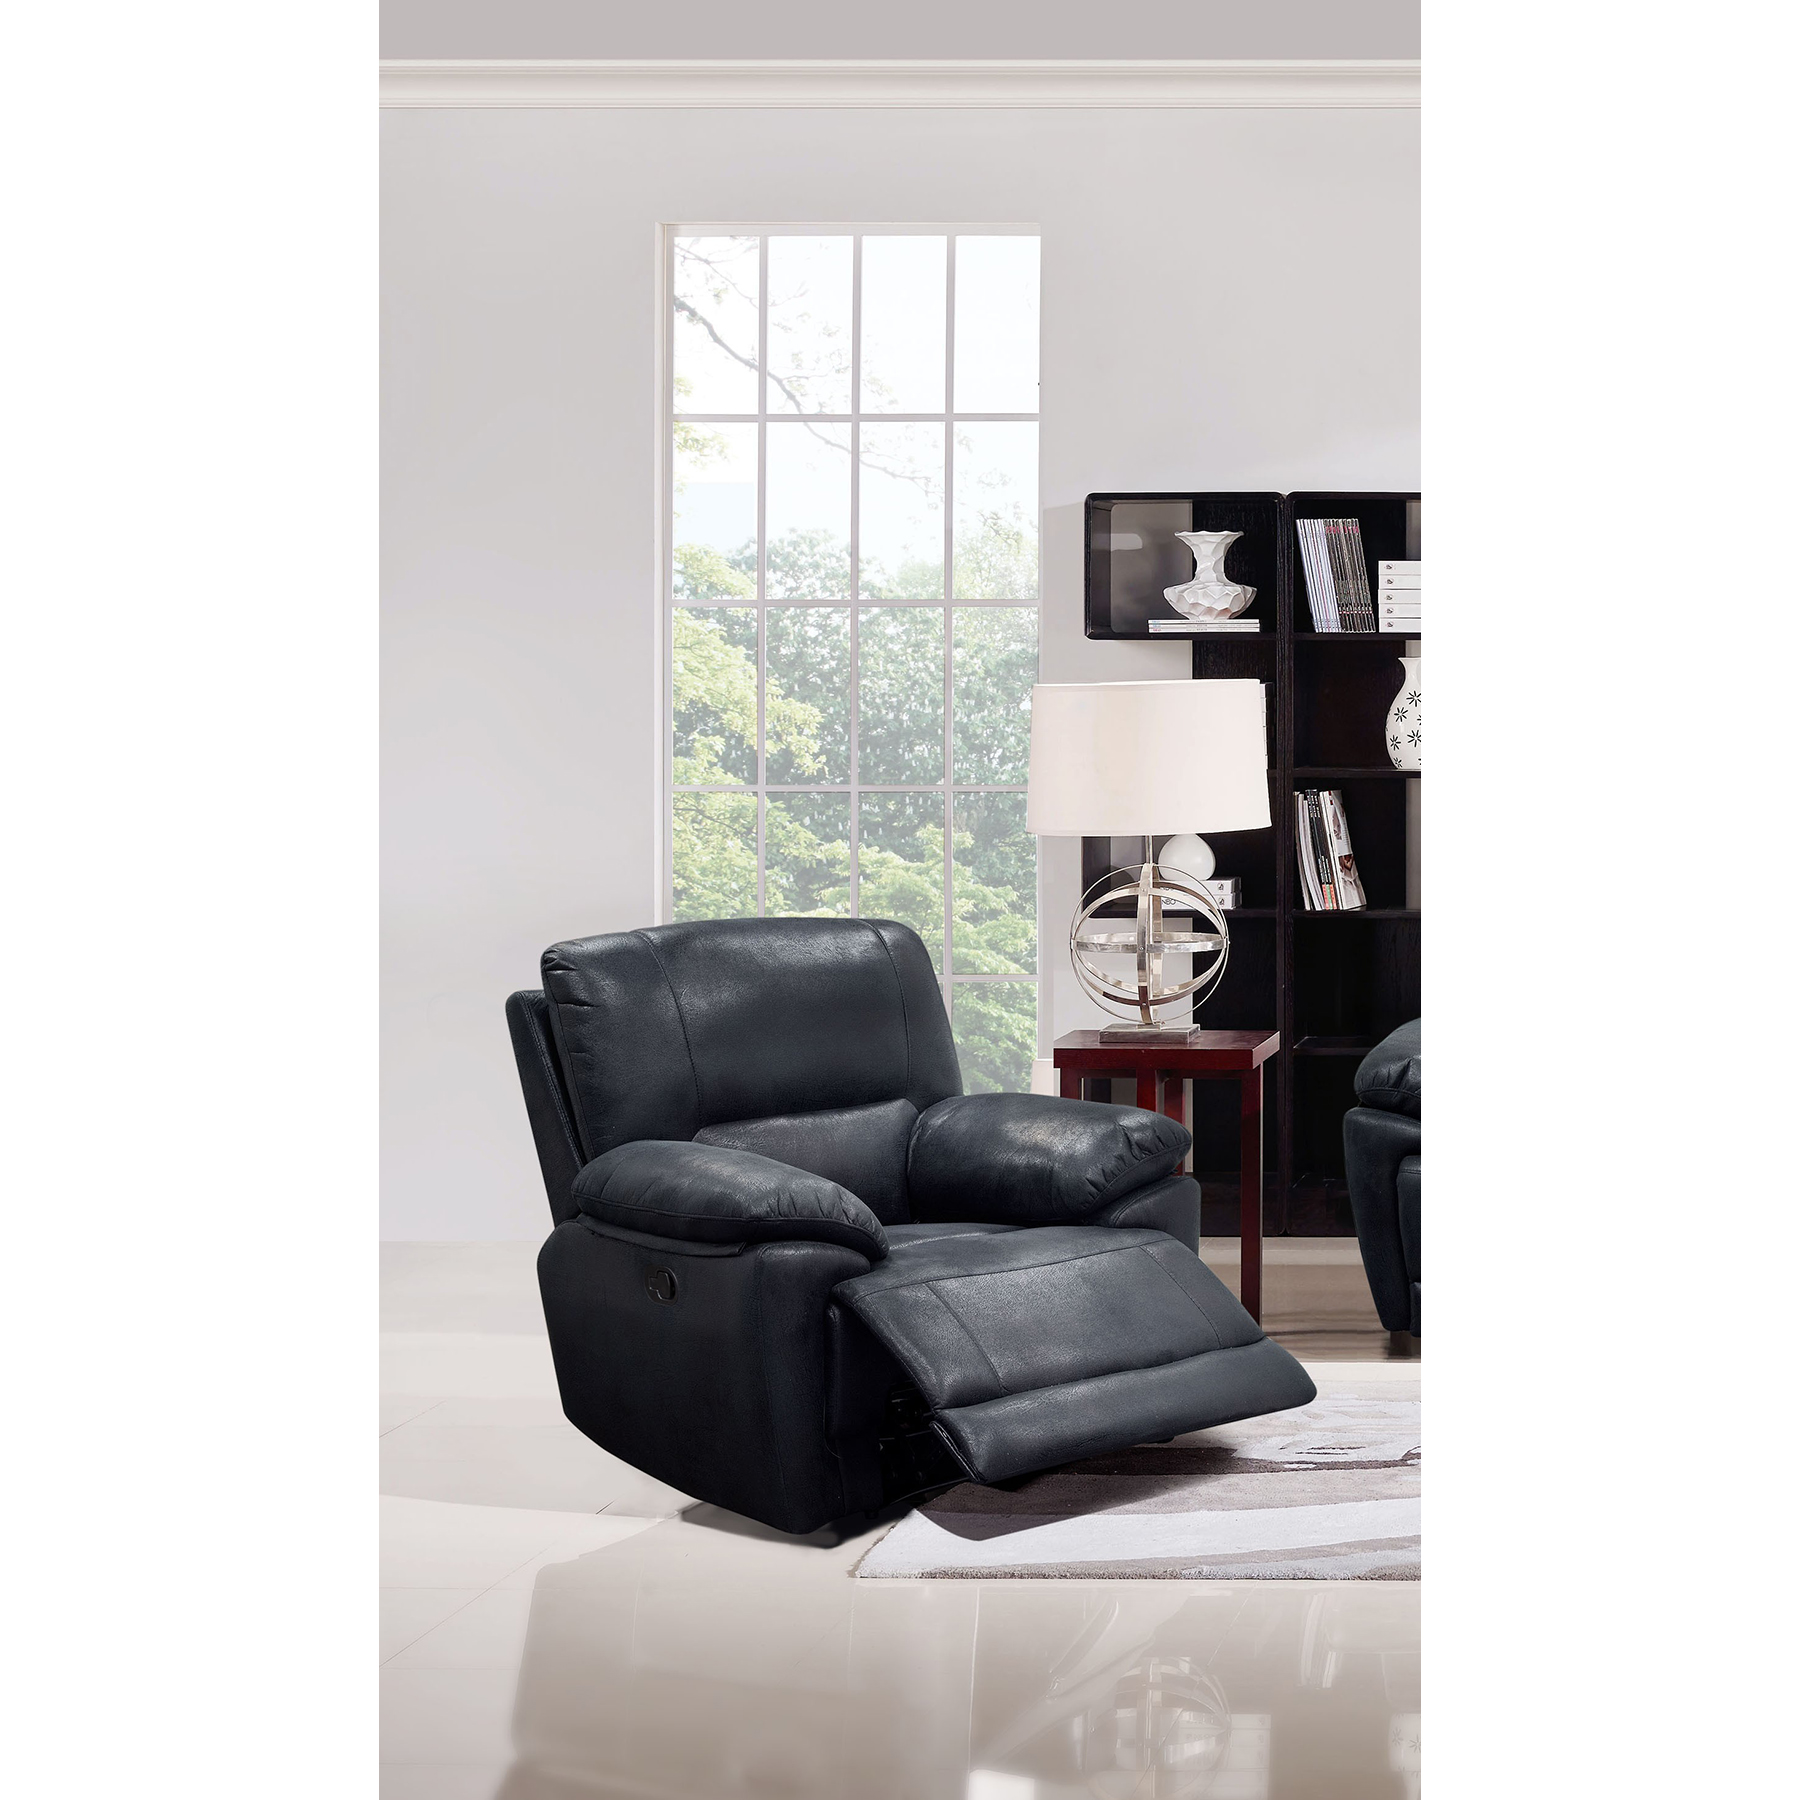 Mason Reclining Chair - Black